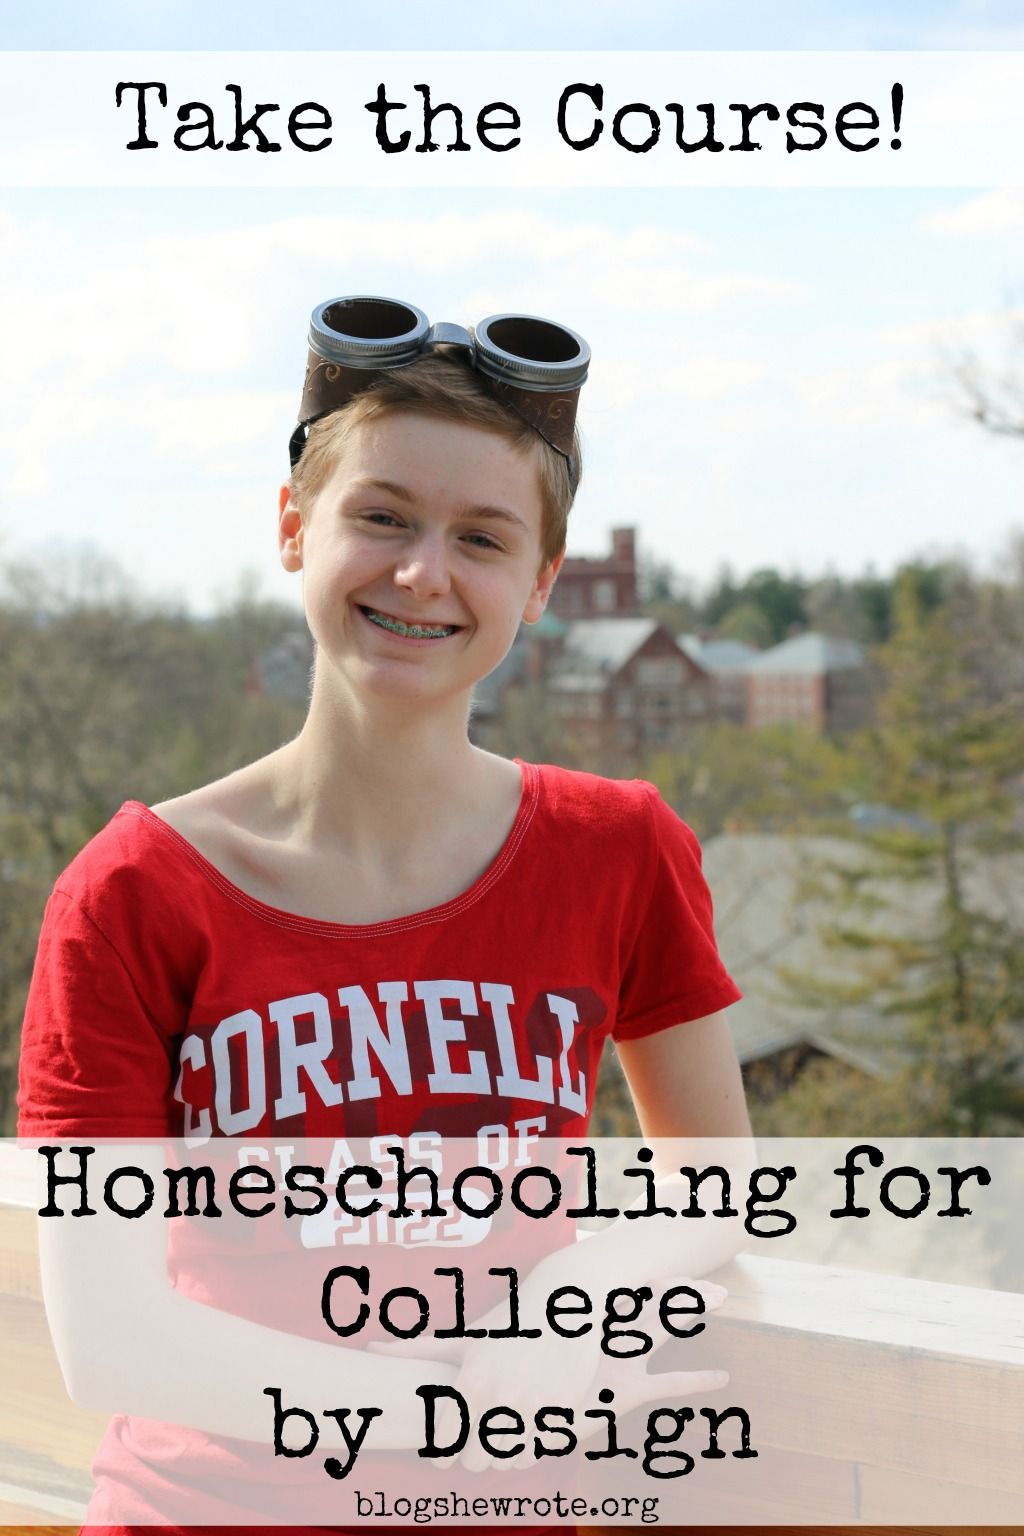 Homeschooling For College By Design Course